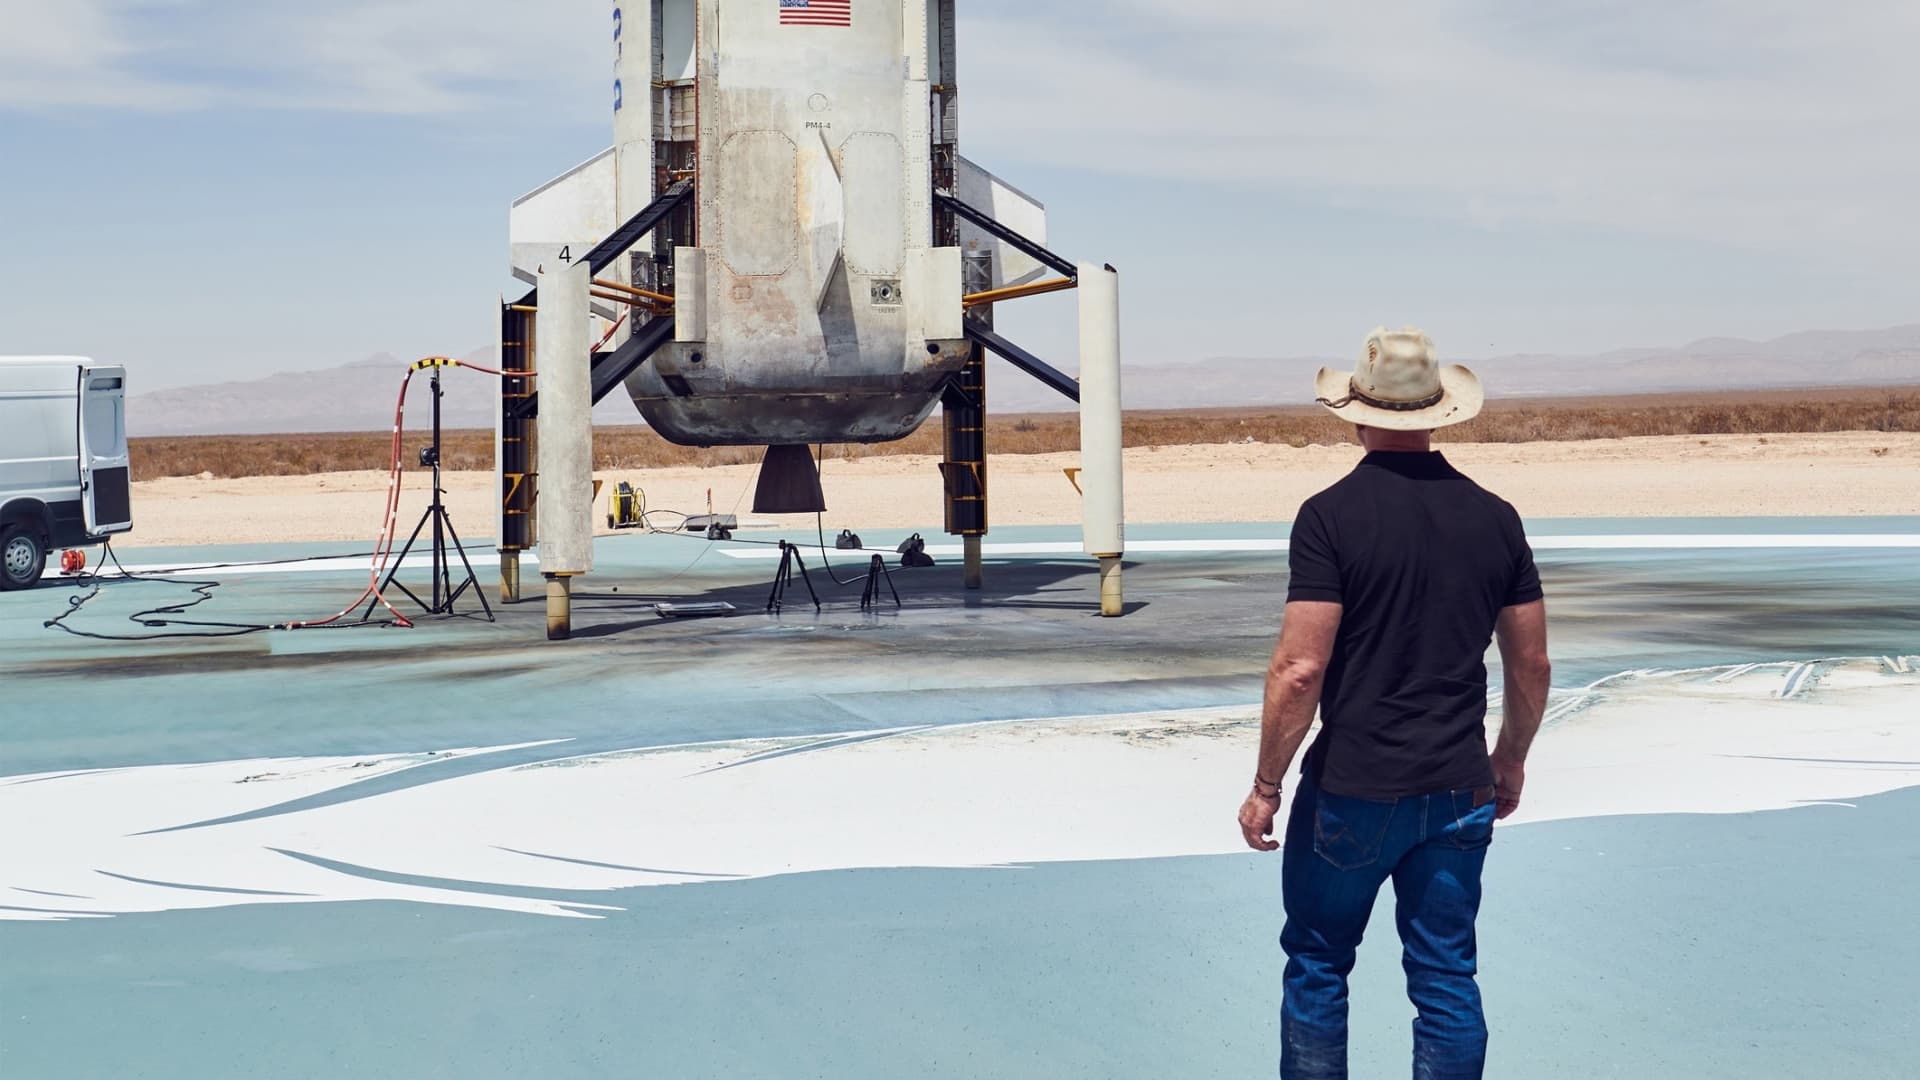 Jeff Bezos takes a look at the New Shepard rocket booster on the landing pad after a successful NS-15 flight and landing in April 2021.